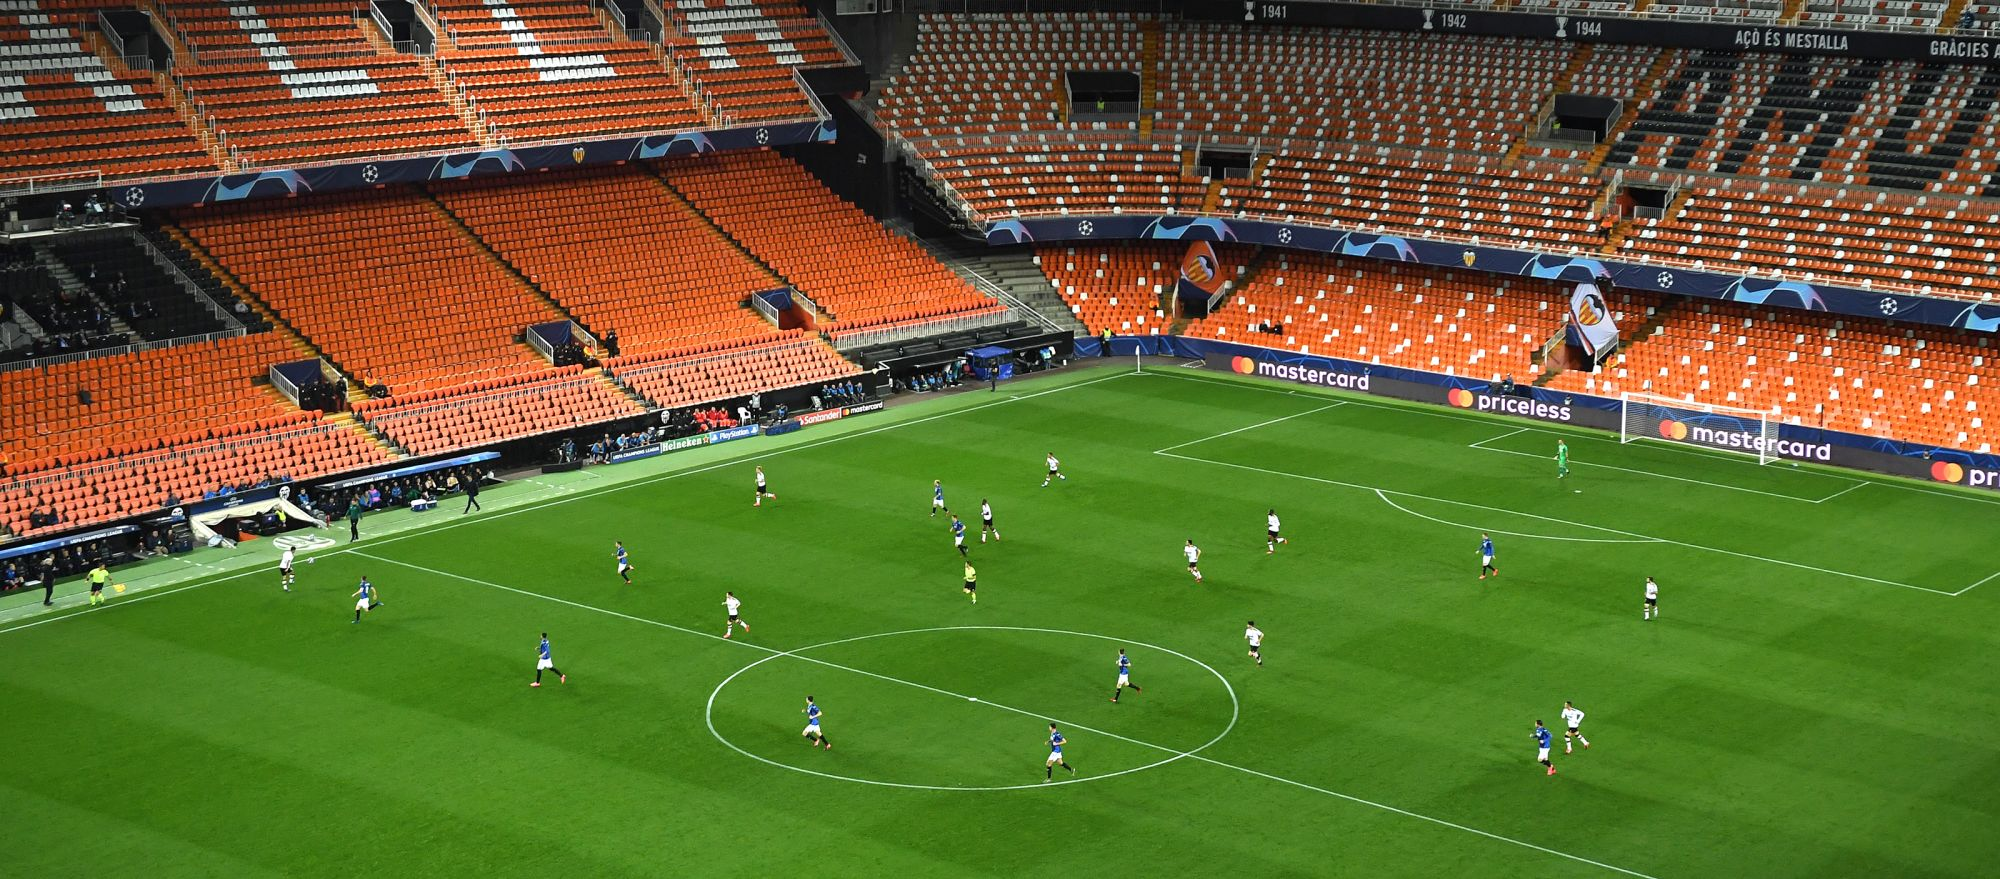 Wide angle image of players playing inside a pitch without spectators